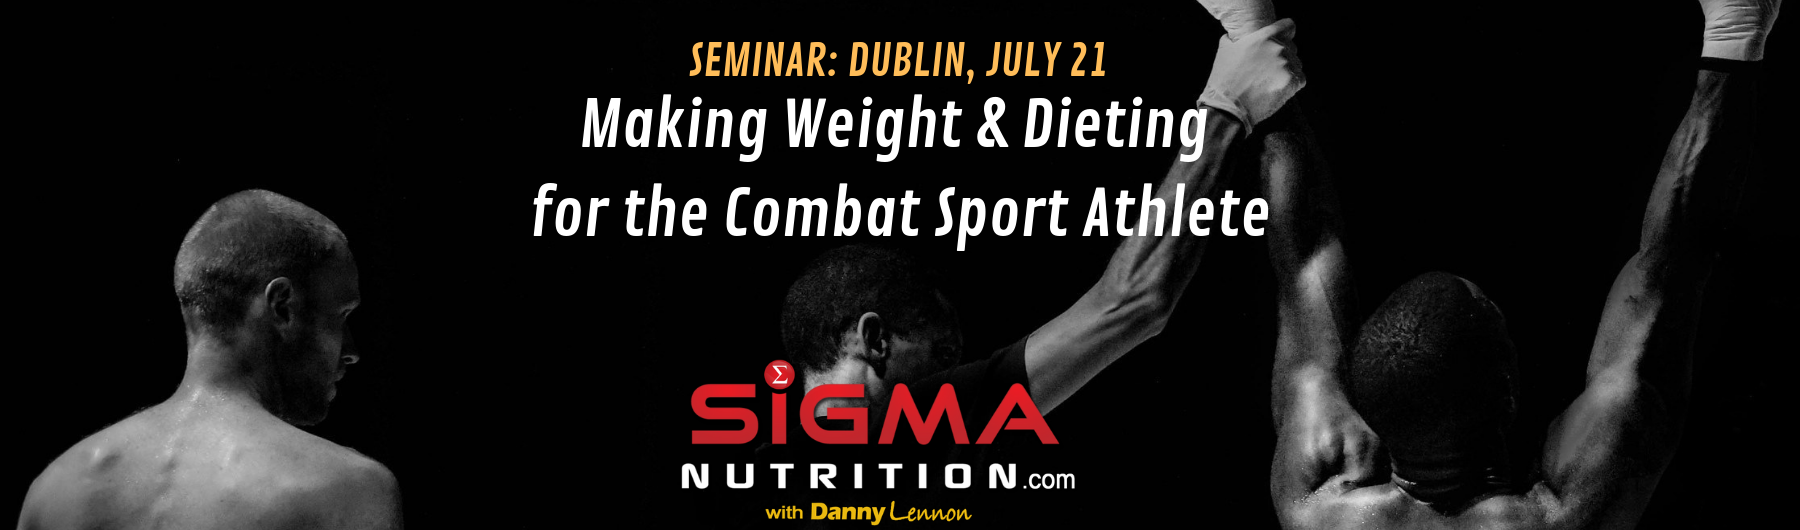 Making Weight & Dieting for the Combat Sport Athlete